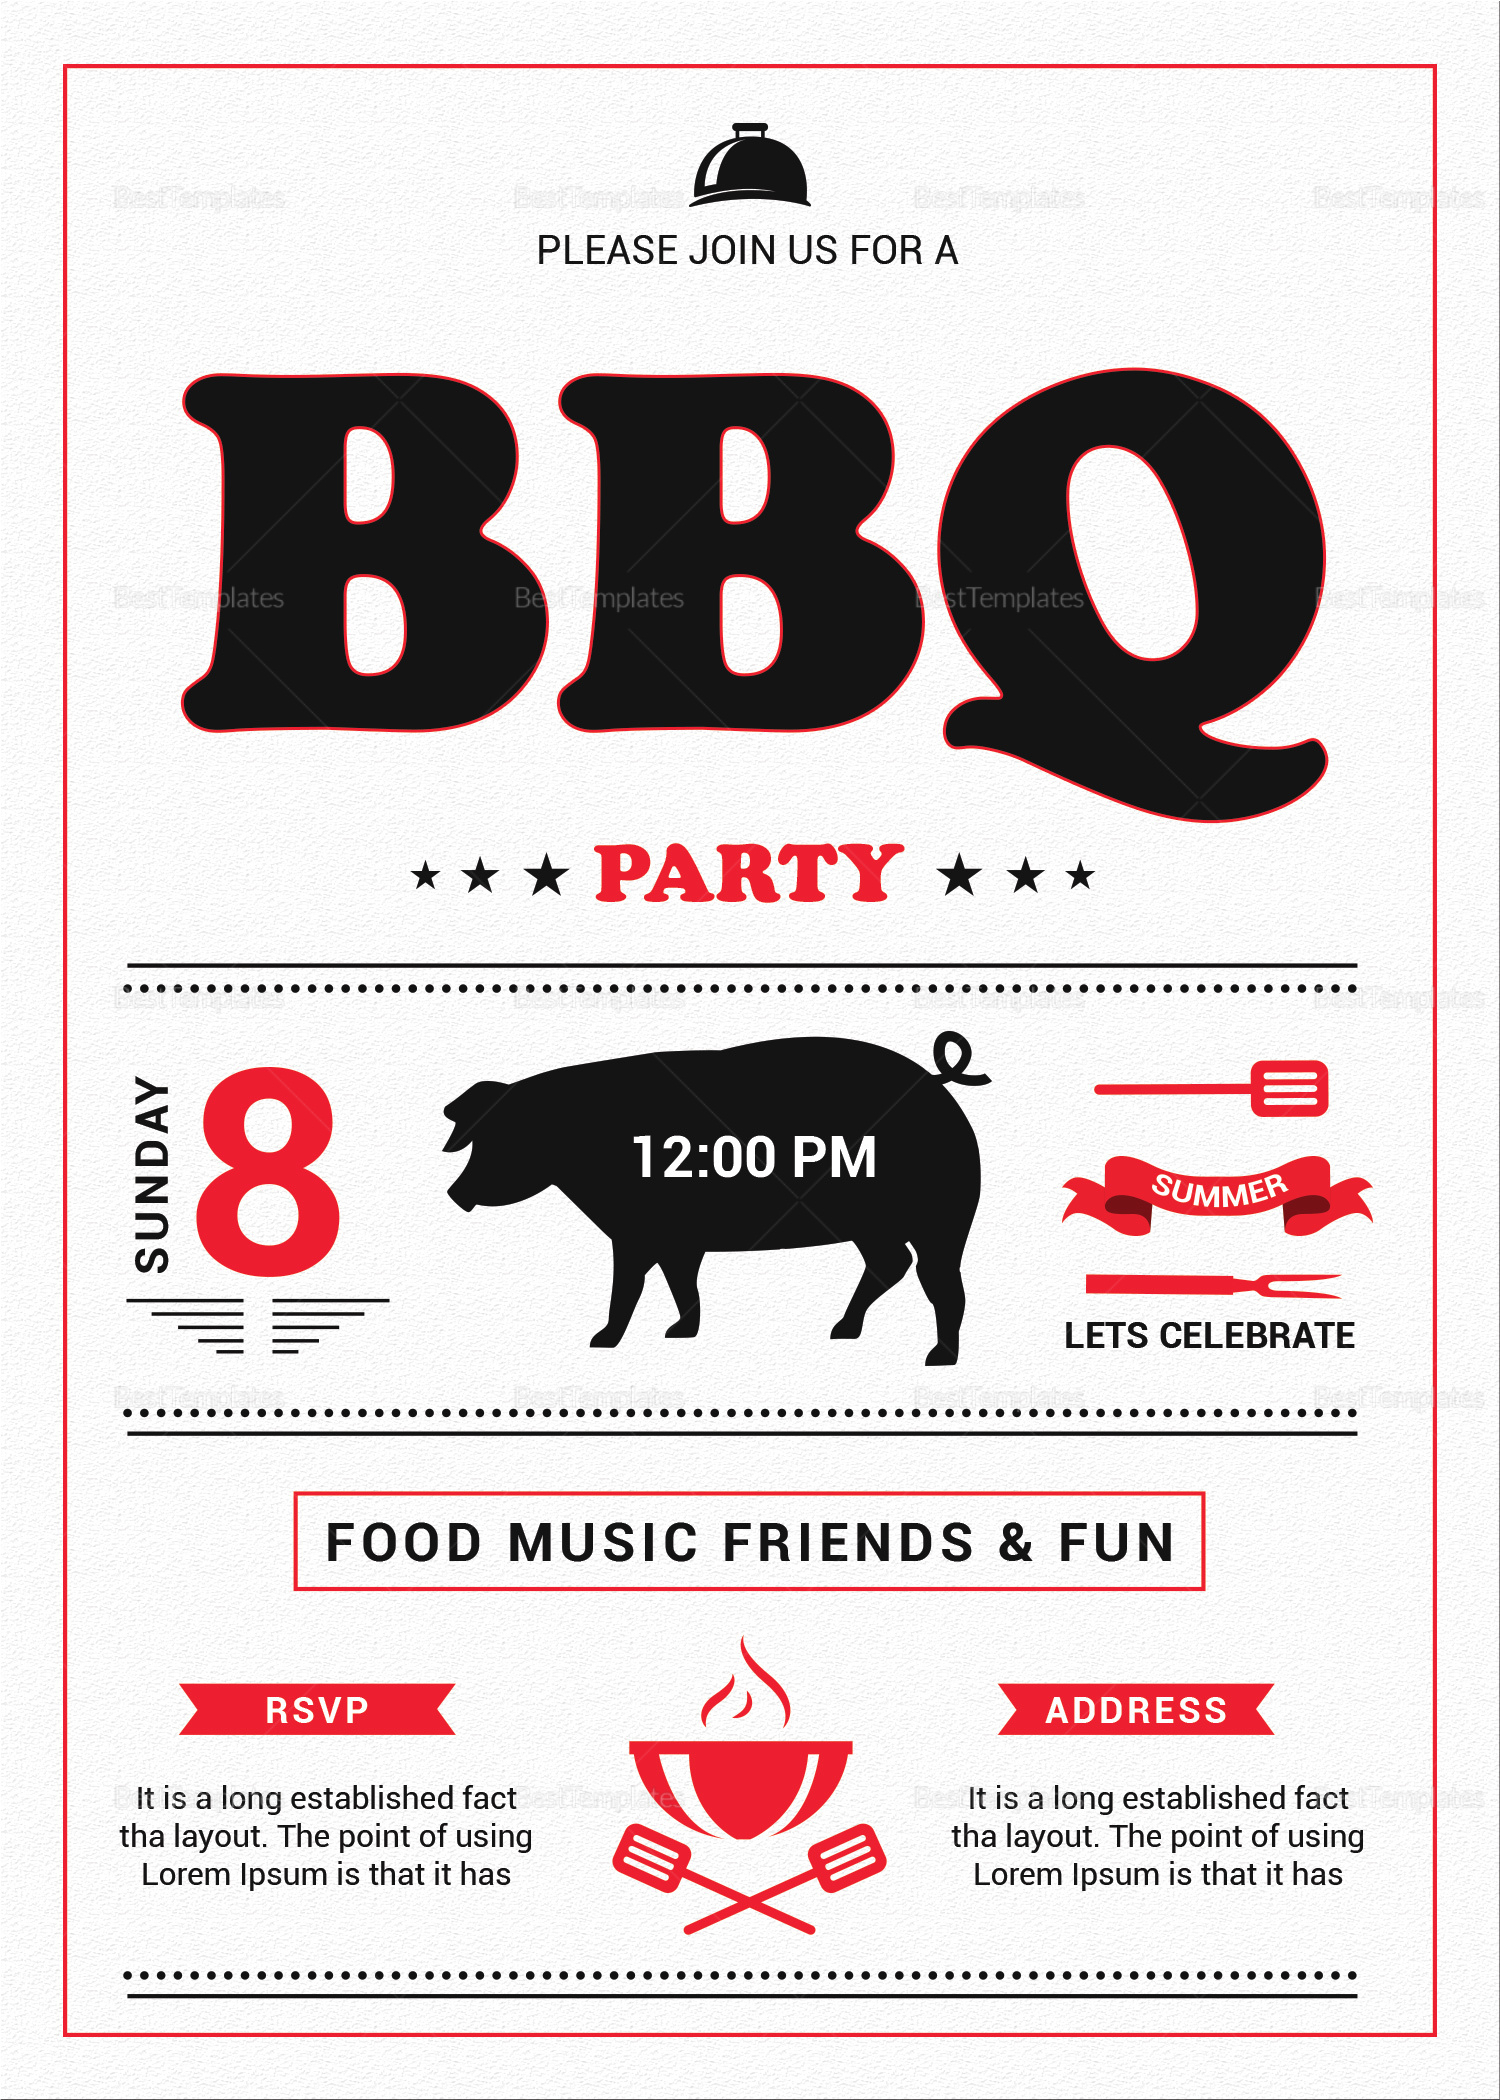 Tasty Barbecue Lunch Invitation Template